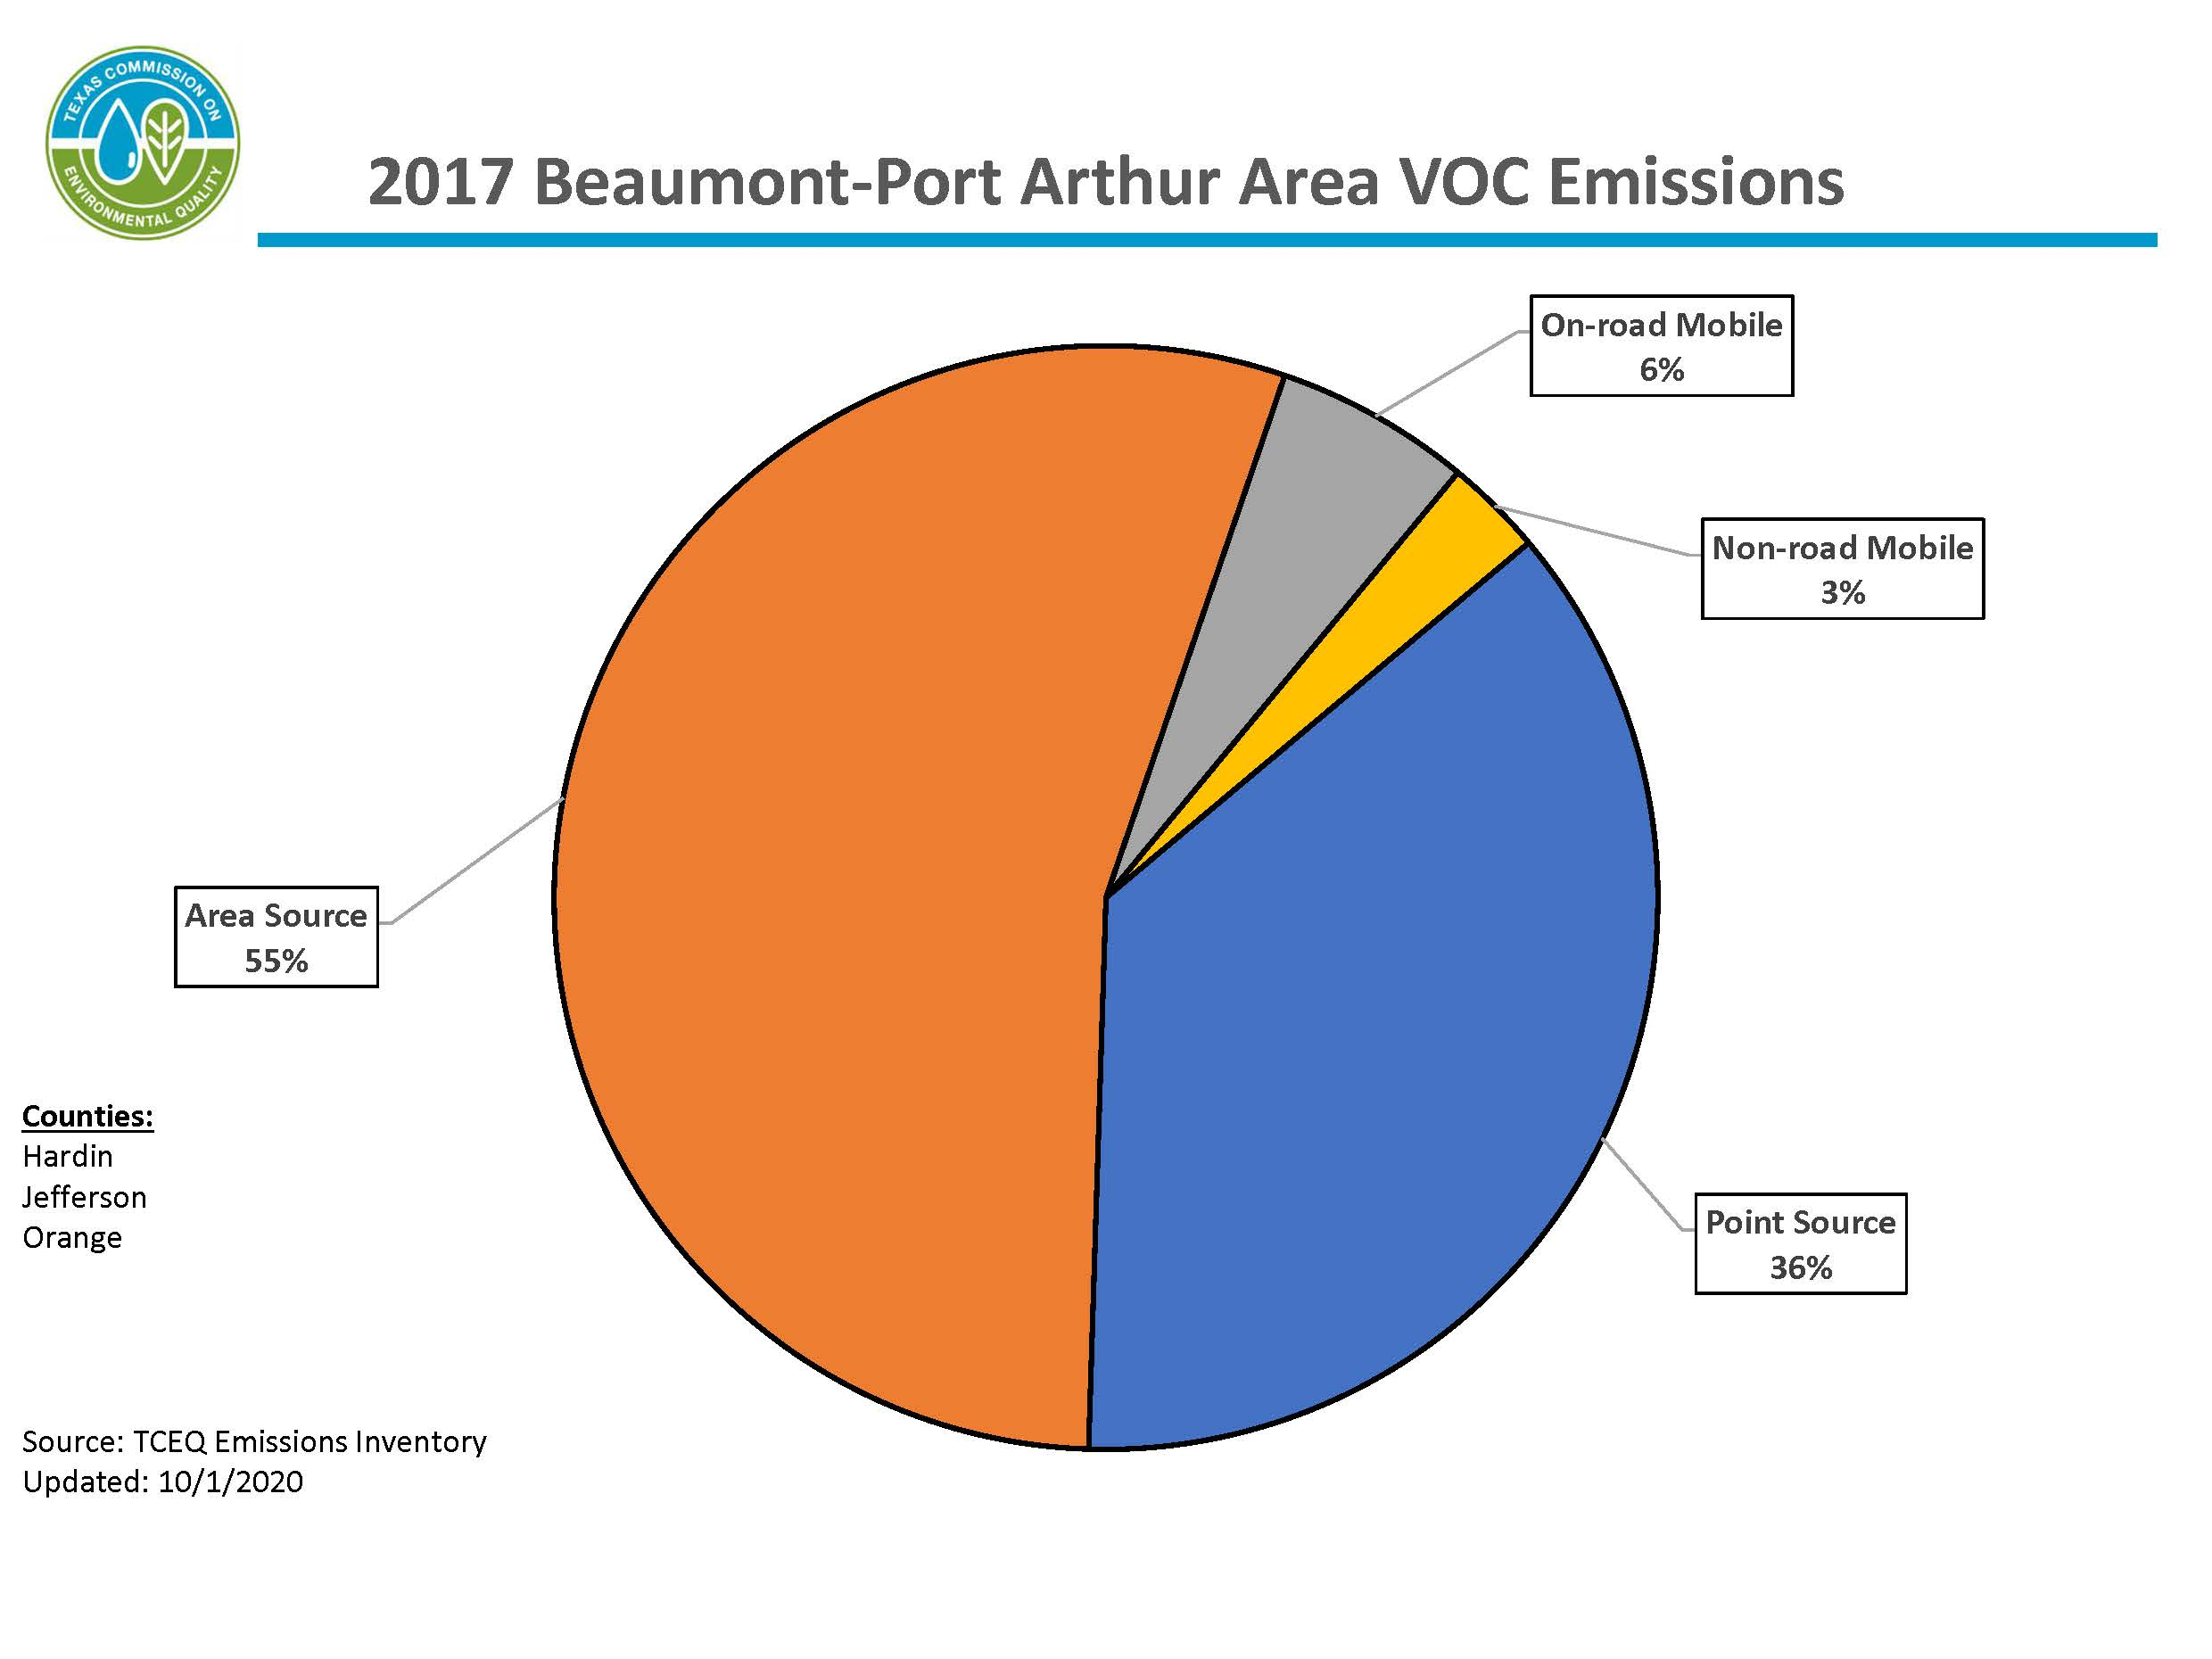 2017 Beaumont-Port Arthur VOC Emissions